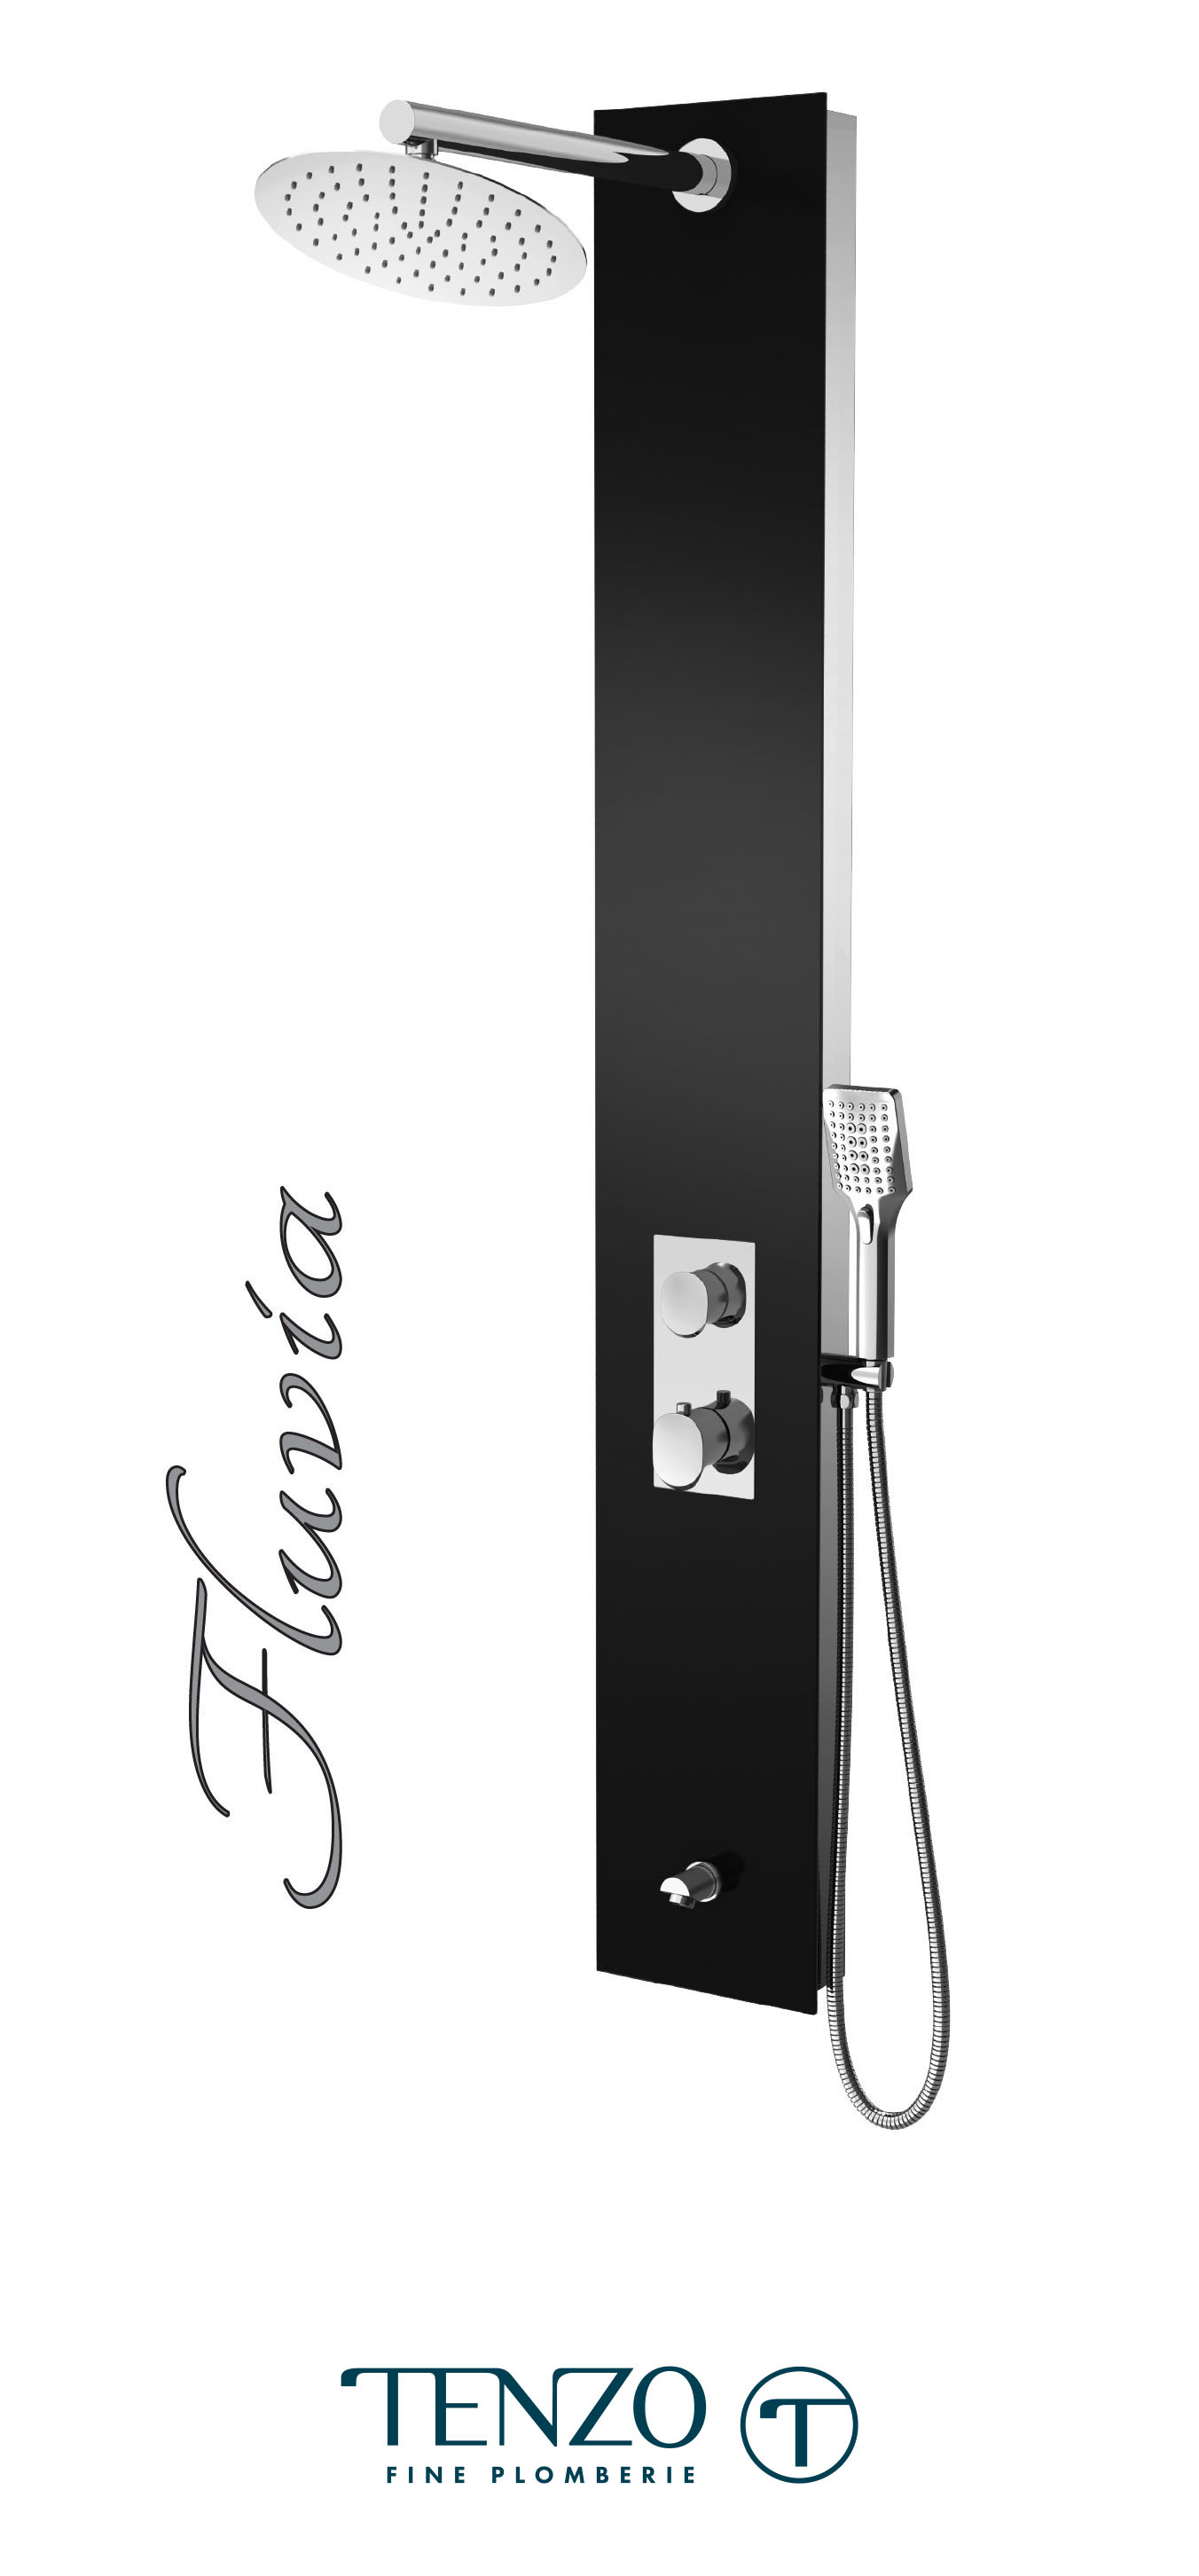 TZG13-XX-FL-SX - Shower columns - Tempered Glass, 3 functions